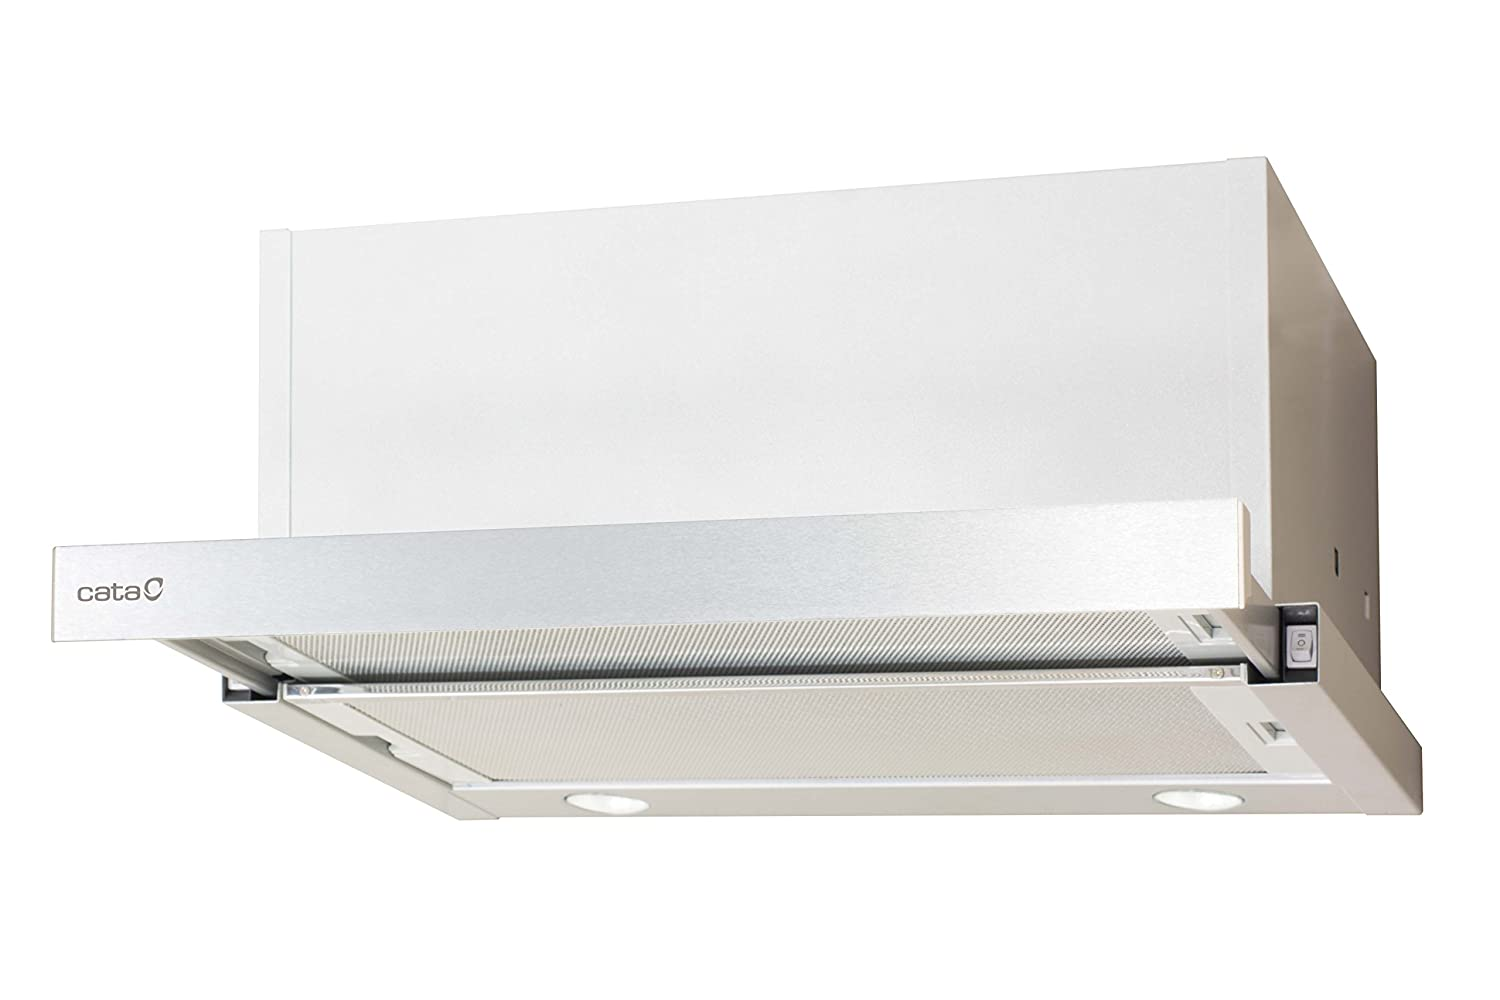 CATA TF 6600 duralum 60 – Bell (Built-in, Ducted, D, C, A, B) TF 6600 Duralum 60